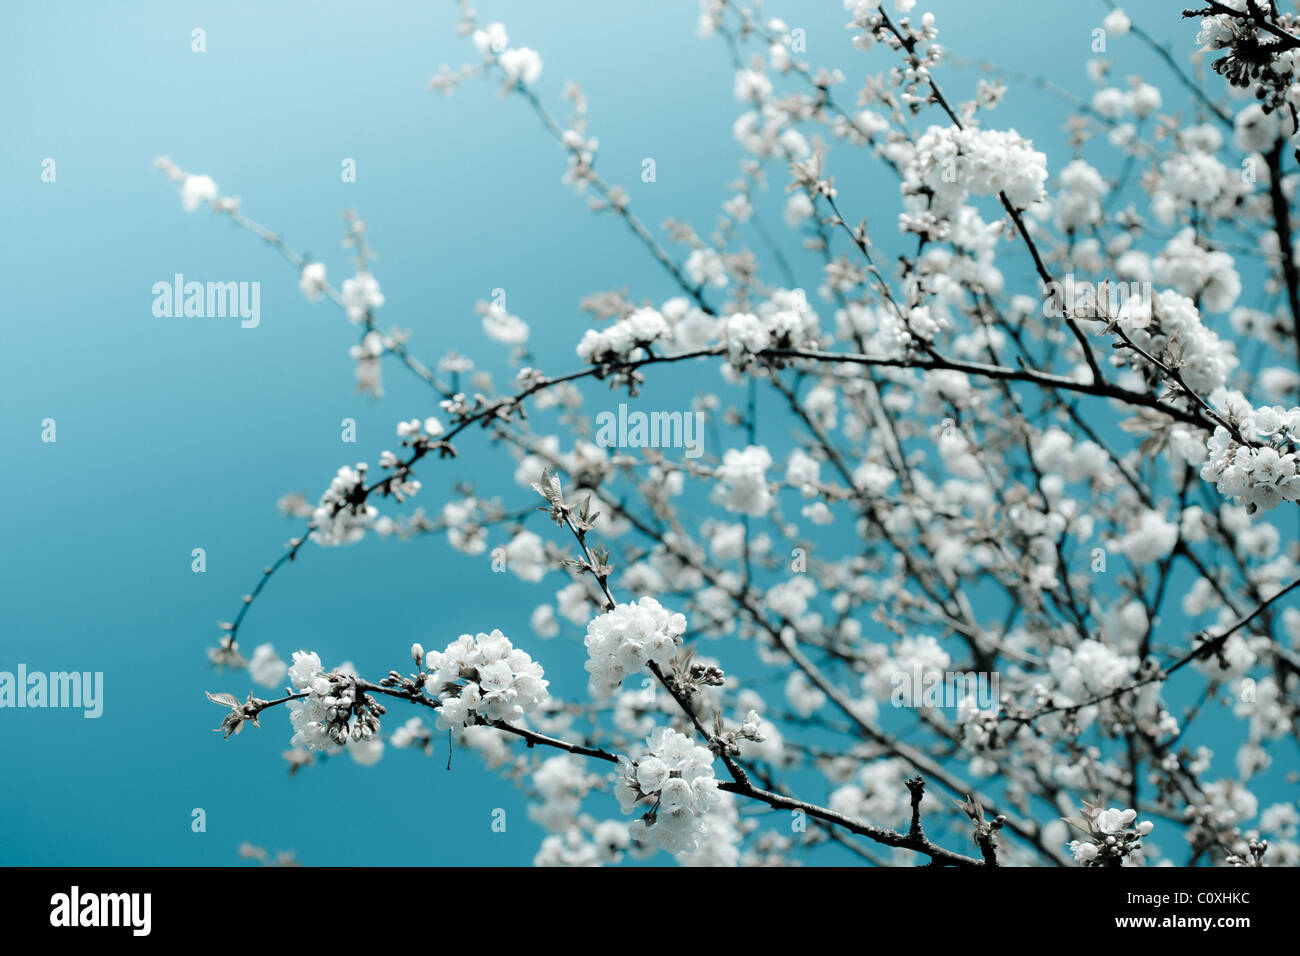 Bunches of white cherry blossoms against a vivid blue sky. Nature Background. - Stock Image